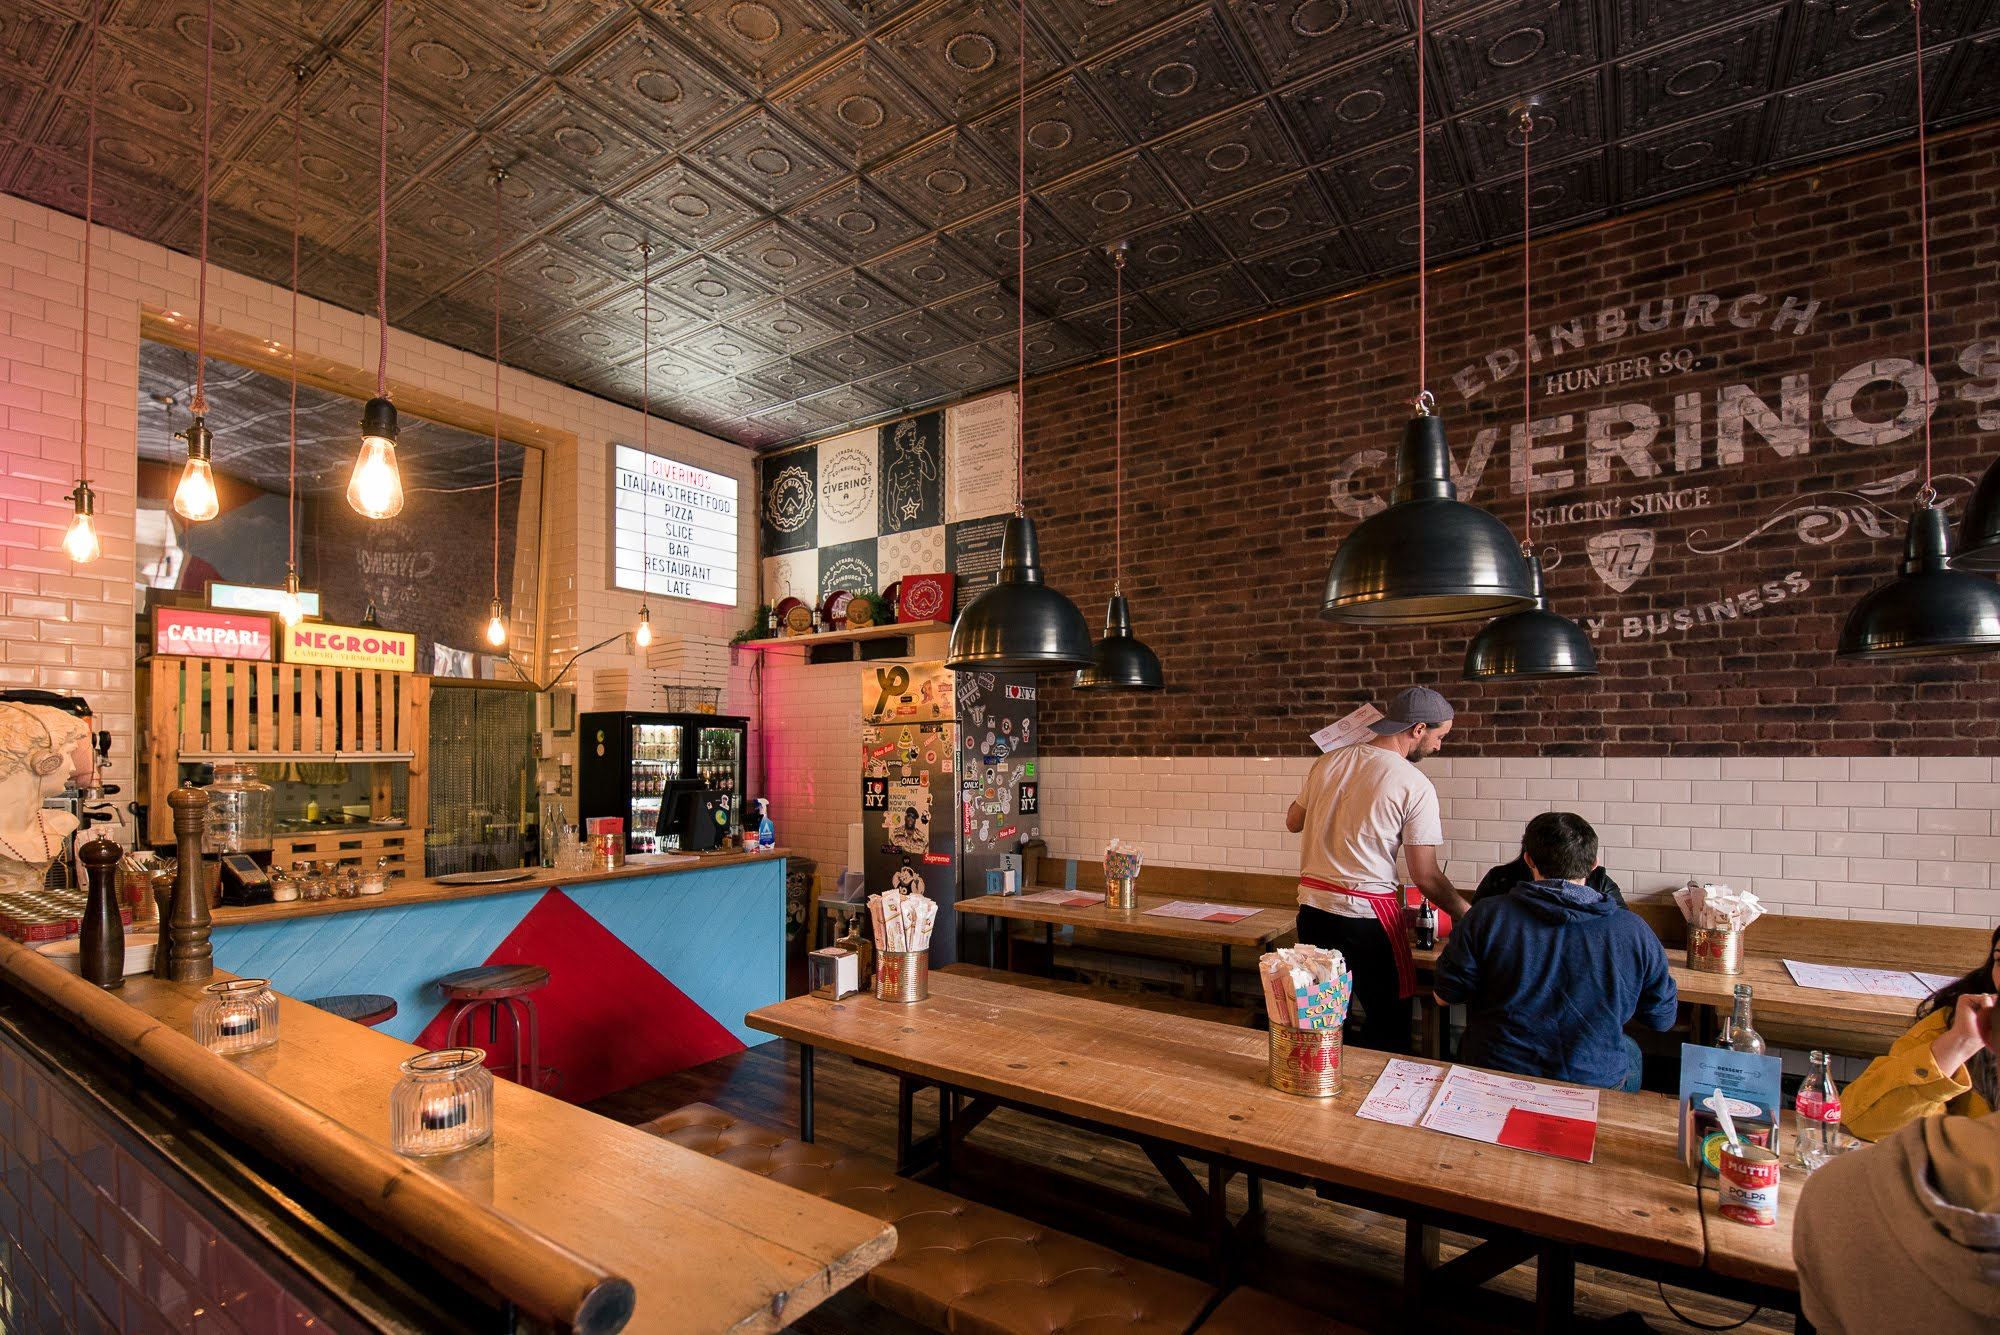 Benches inside the Italian Street Food eatery Civerinos.